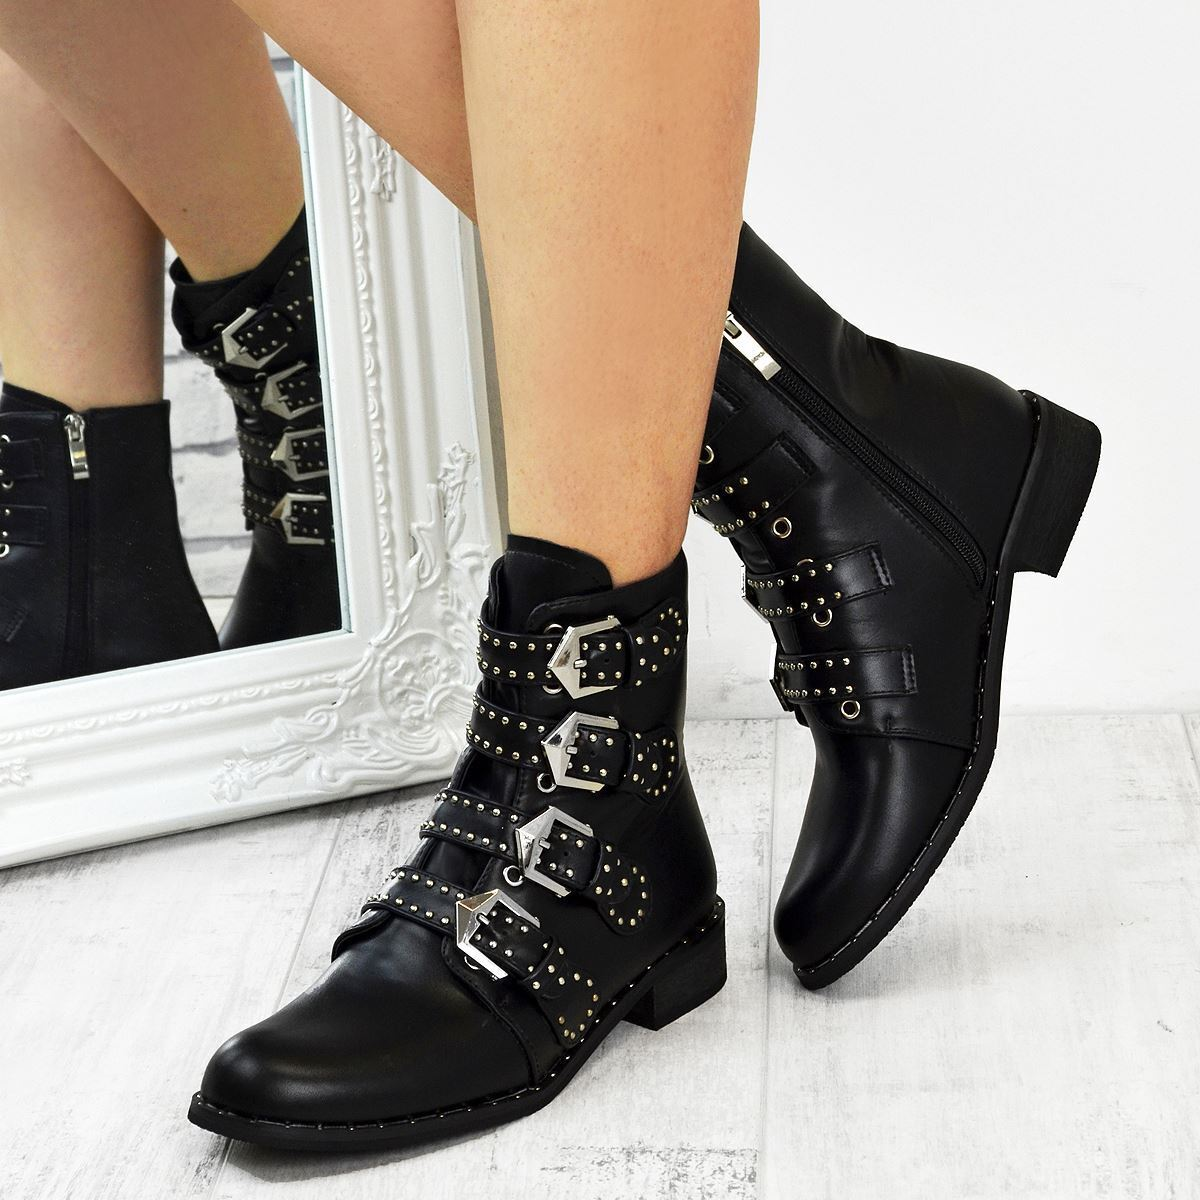 Black Flat Ankle Boots Biker Buckle Studded Punk Goth Womens Ladies Size